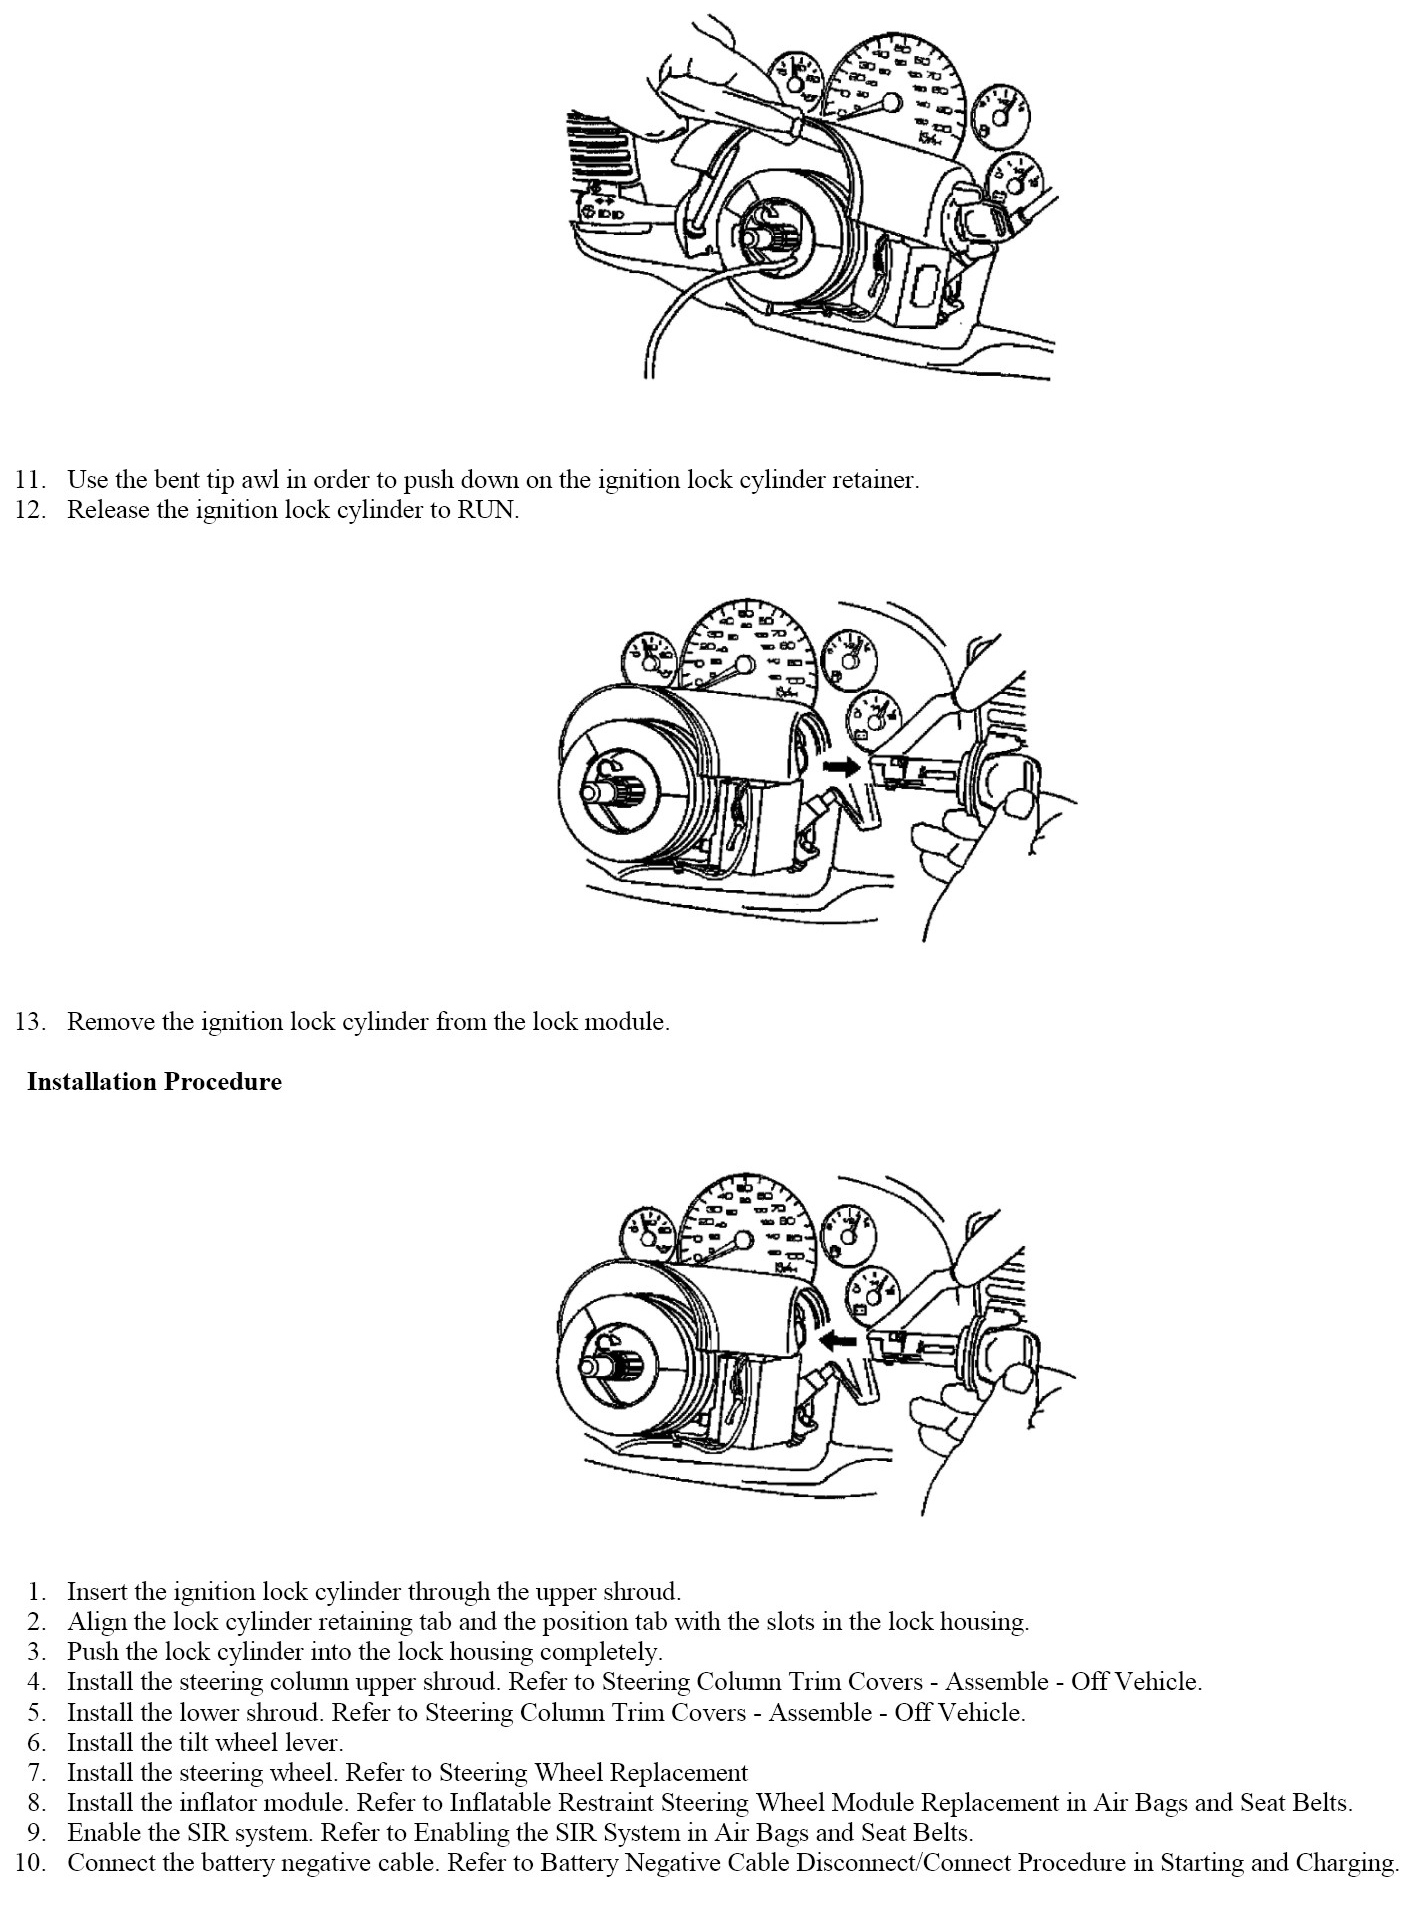 2002 impala ignition switch wiring diagram   42 wiring diagram images